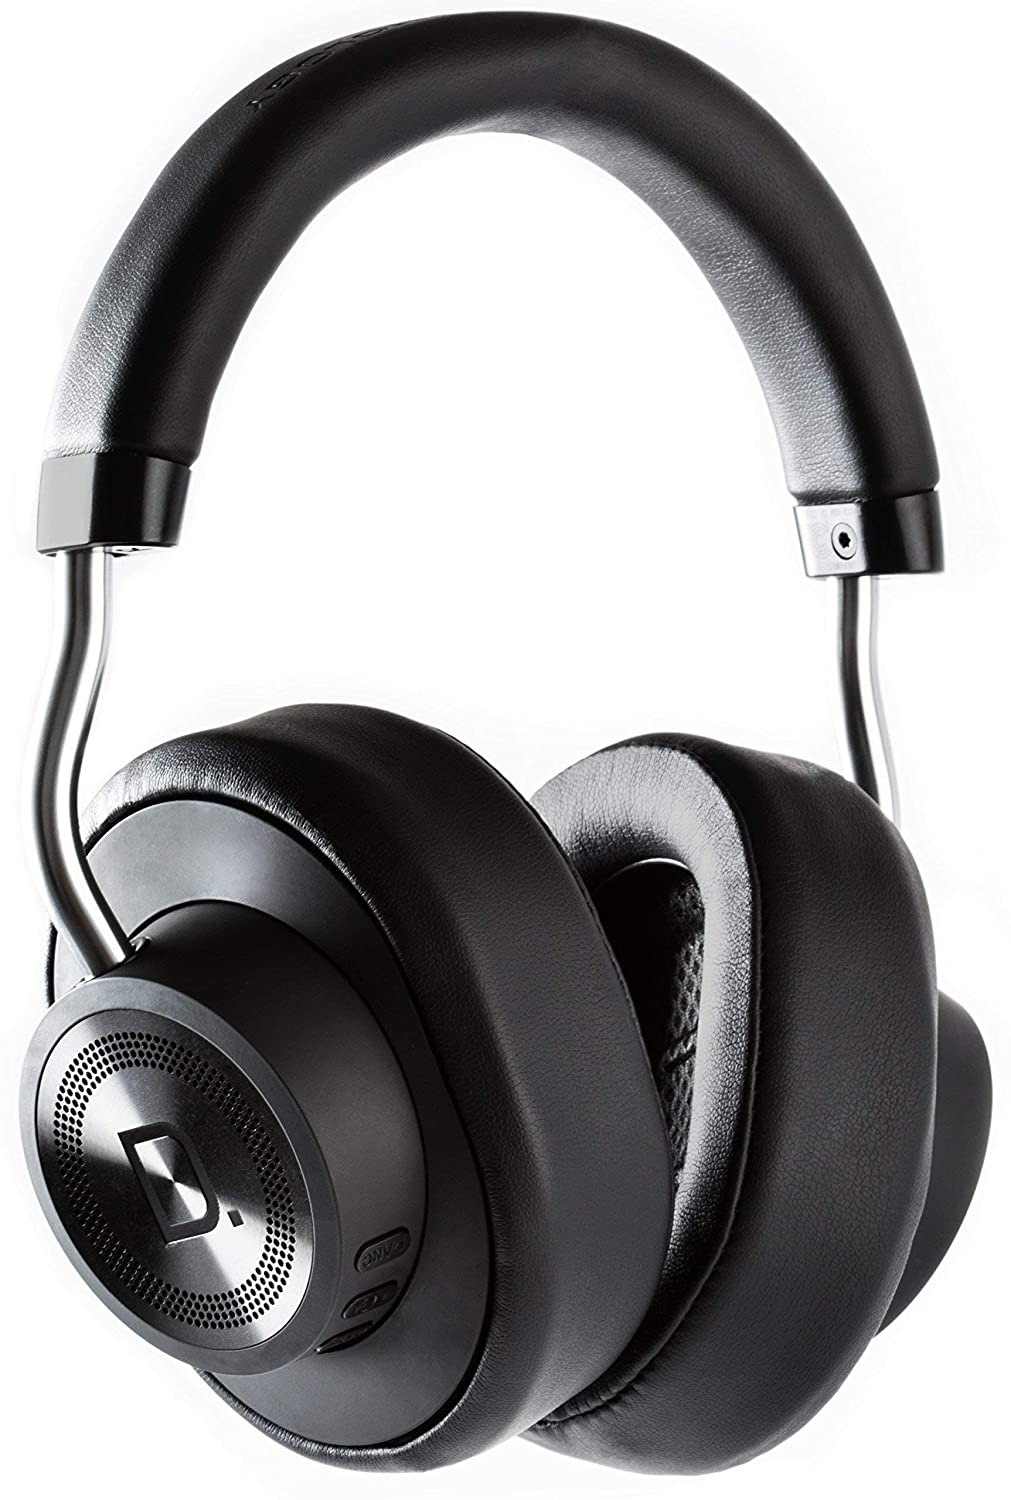 Definitive Technology Symphony 1 Over-Ear Bluetooth Wireless Headphones - Black (Renewed)